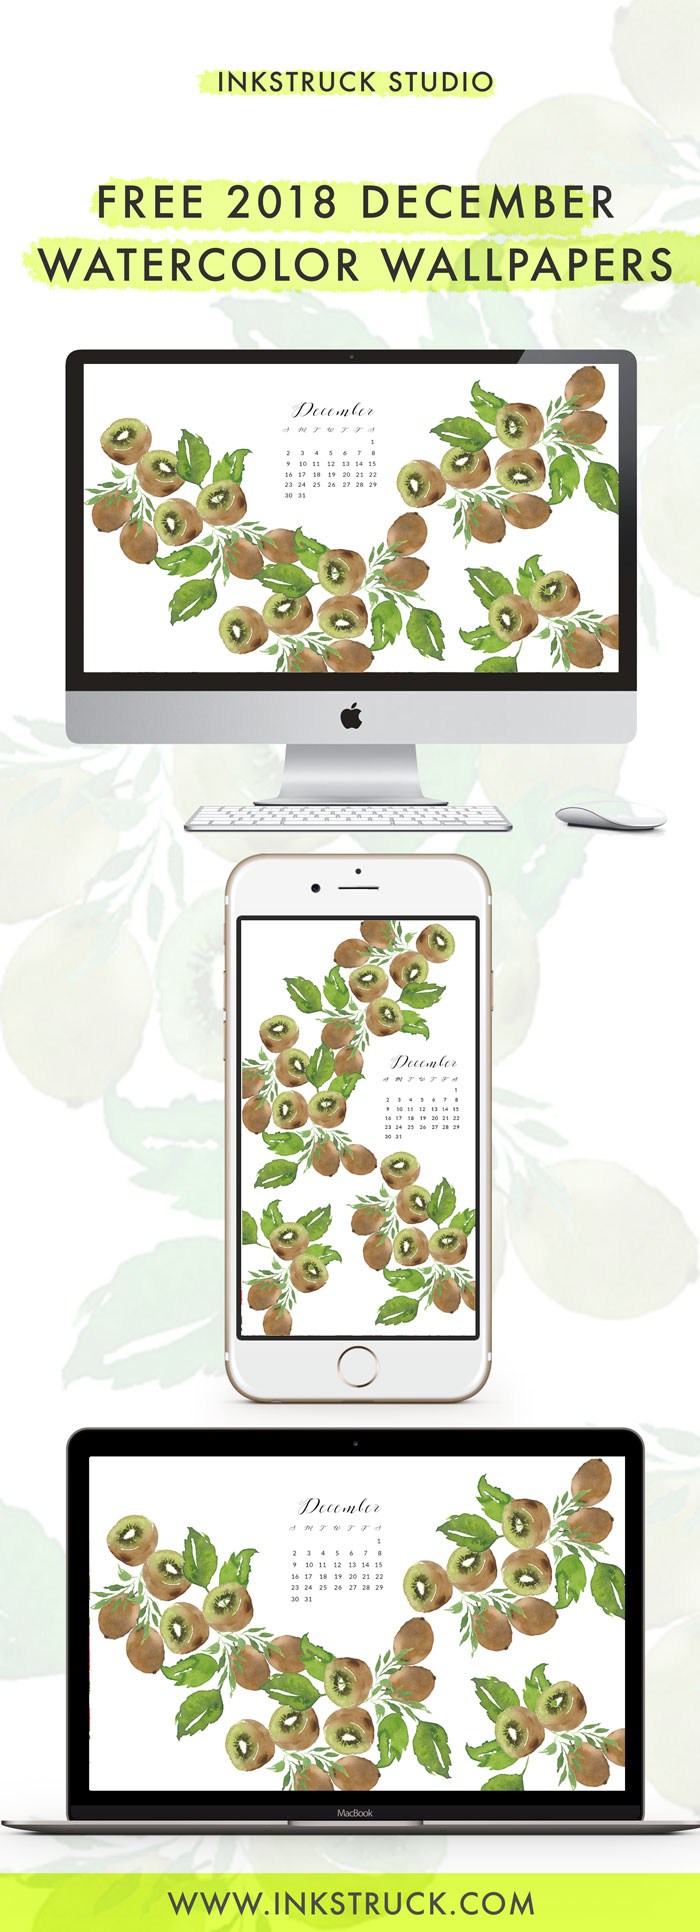 Grab my free 2018 December watercolor wallpapers on the blog now with both dated and undated versions for phones and desktops. - Inkstruck Studio